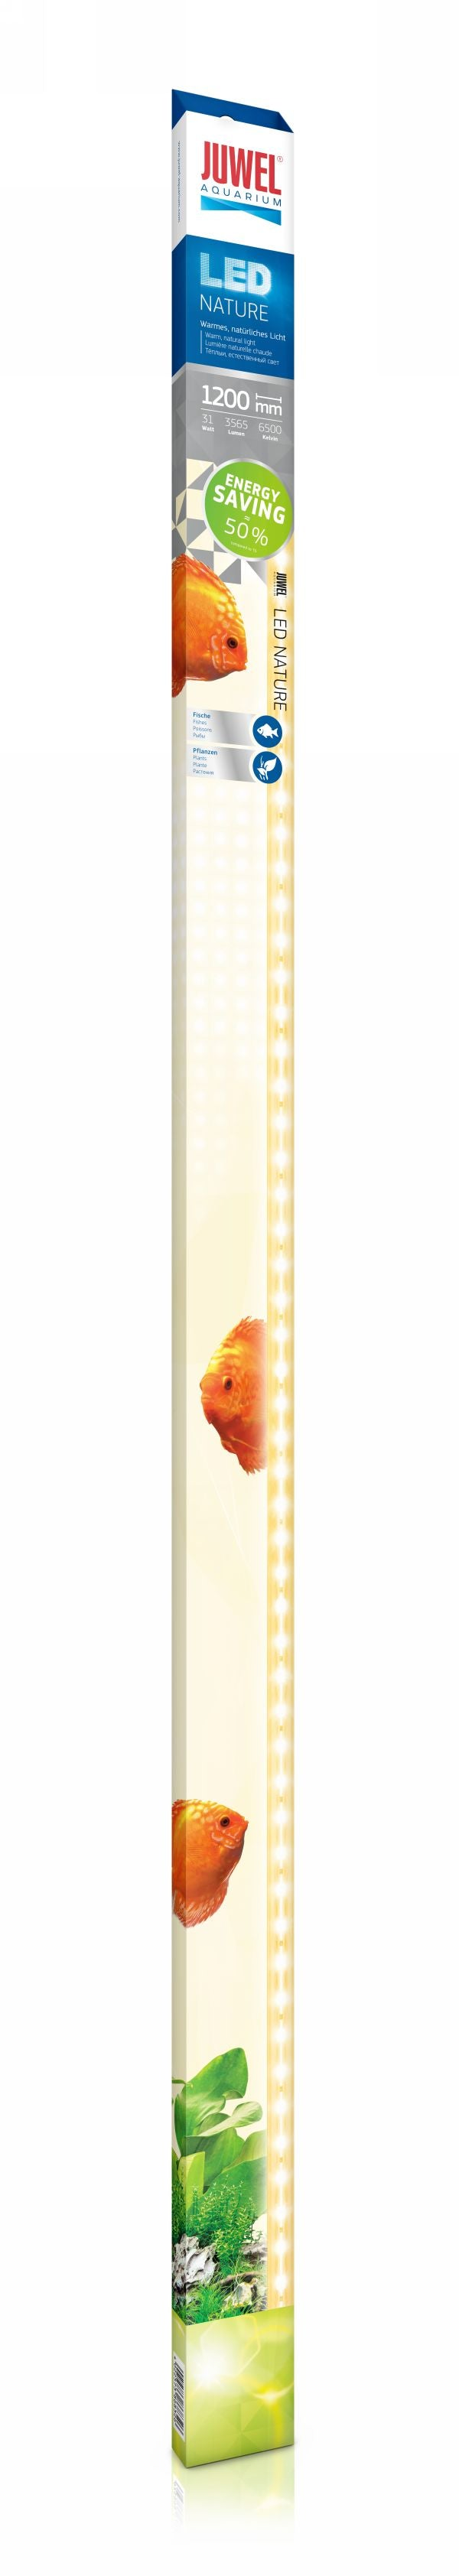 Juwel Nature LED - 31W/1200mm